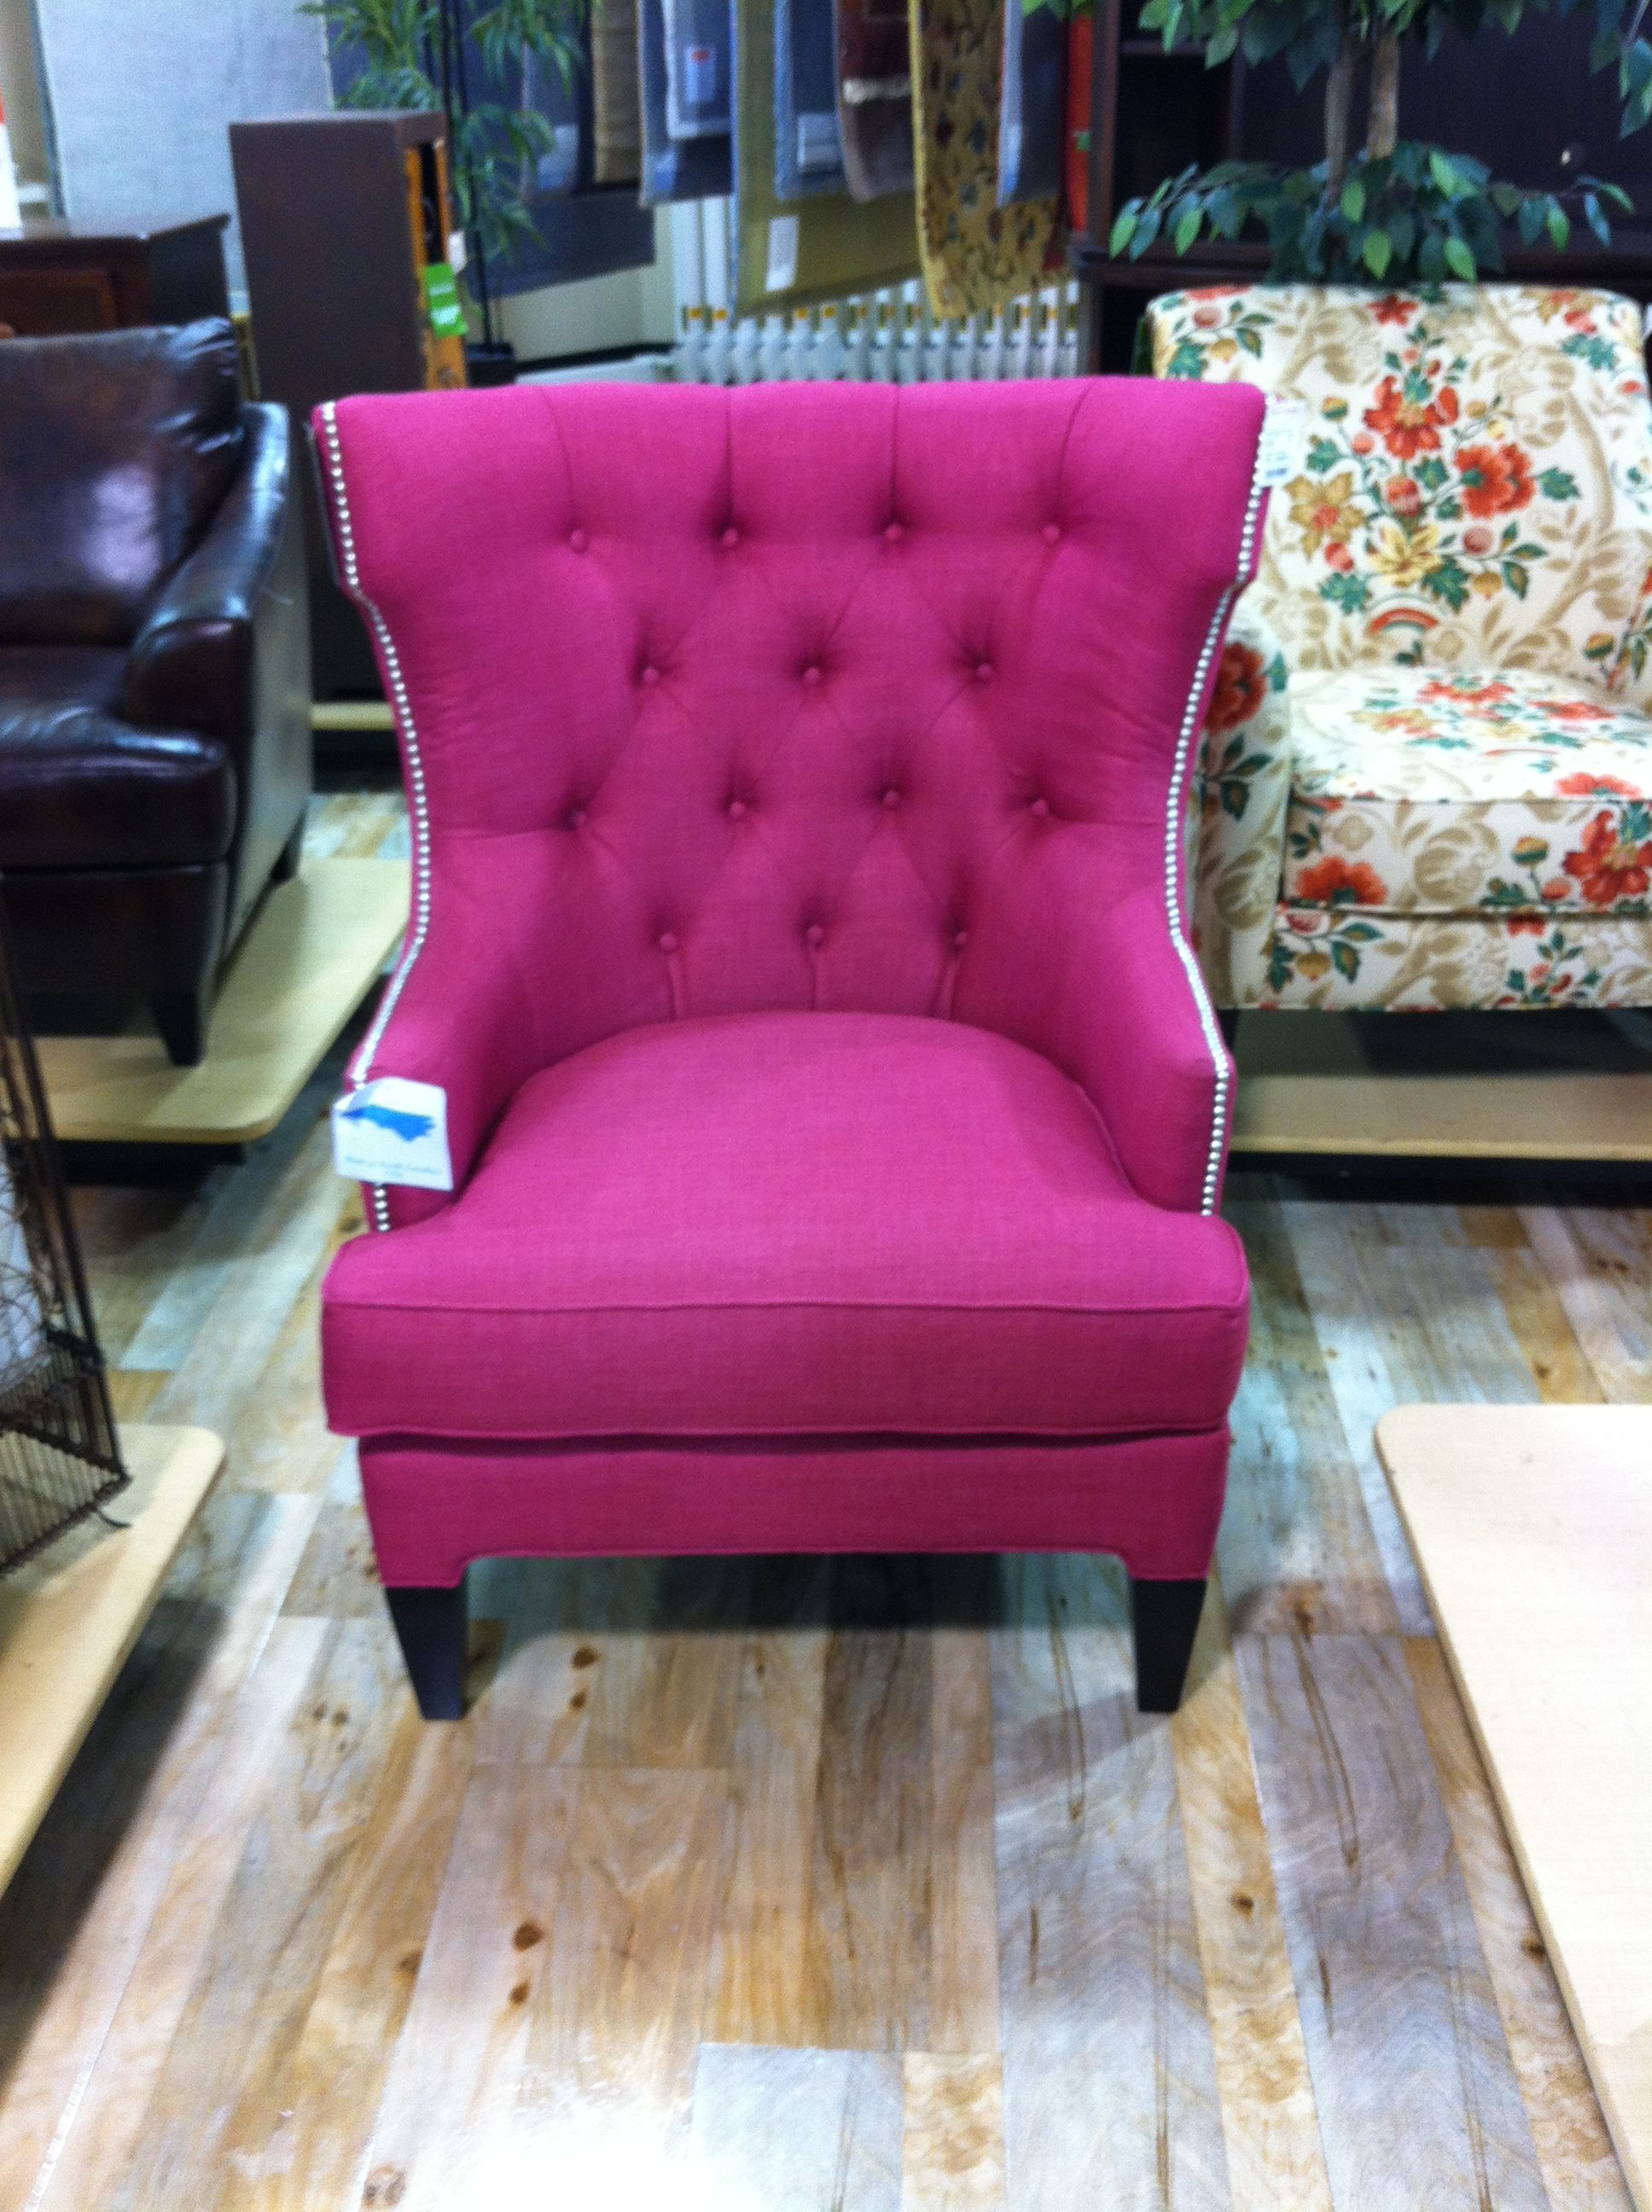 Pink wingback tufted chair with nailhead trim from Homegoods $499